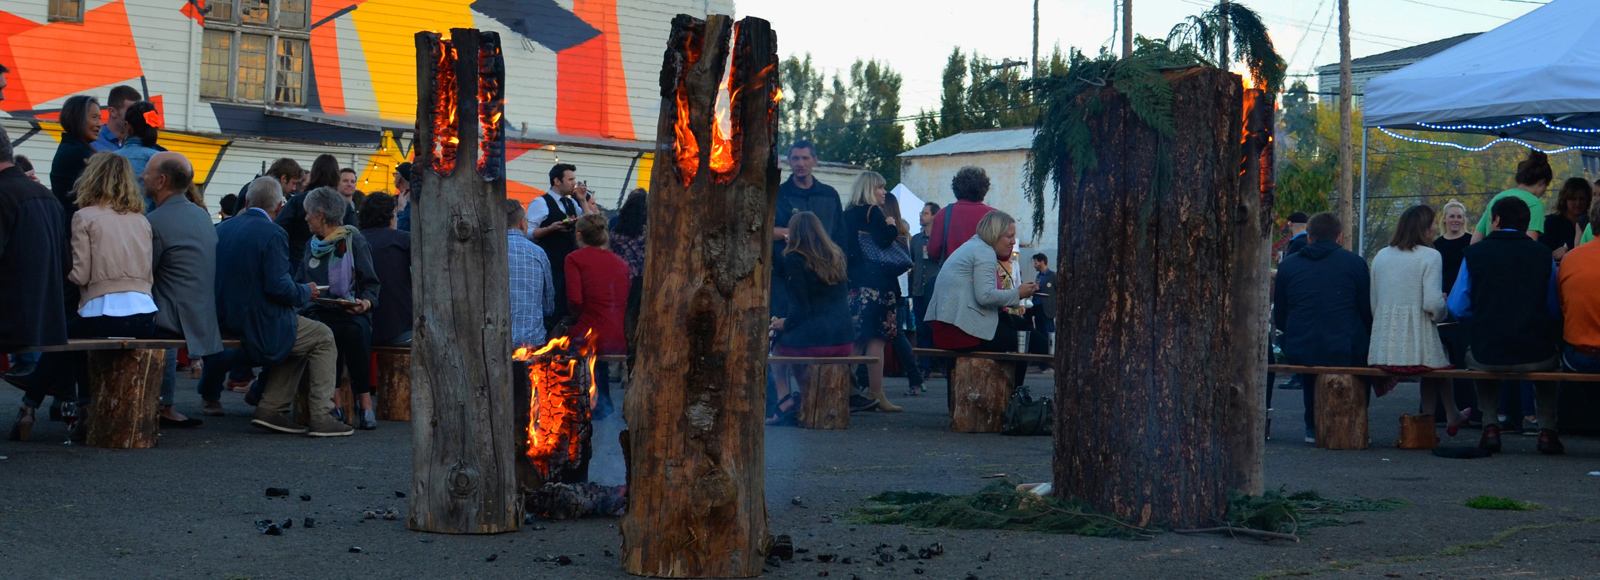 Three large logs, standing vertically, on fire in front of a cheerful crowd of people, some sitting.